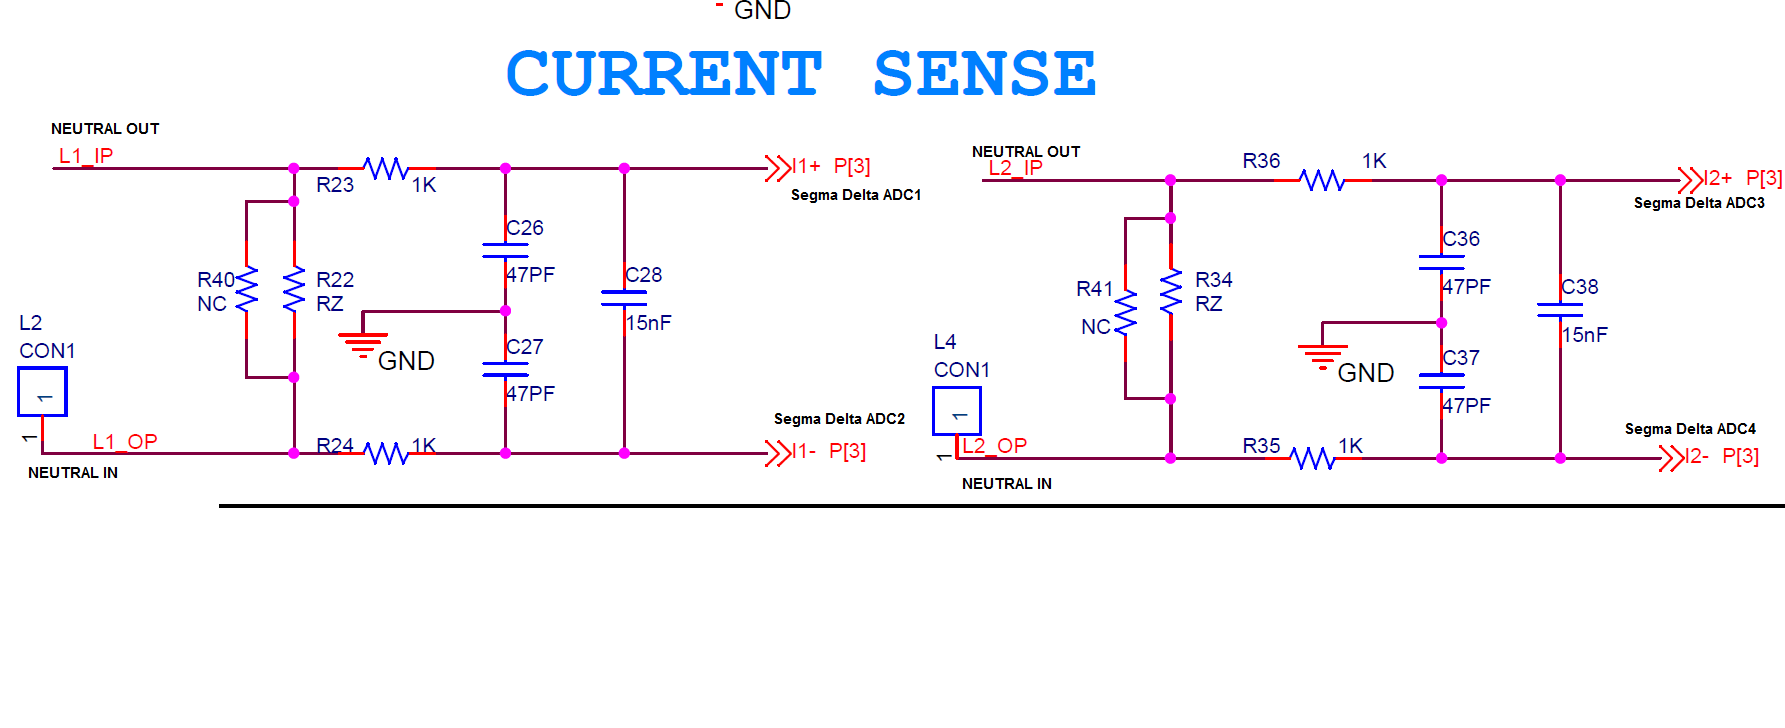 Need Suggestion For Mcu Selection Single Phase Ac Power Thread Induction Motor Wiring Help Needed Please Give Me When We Use One By Plug The Current Sense Function Working Proper But Whenever Both Simultaneous That Time